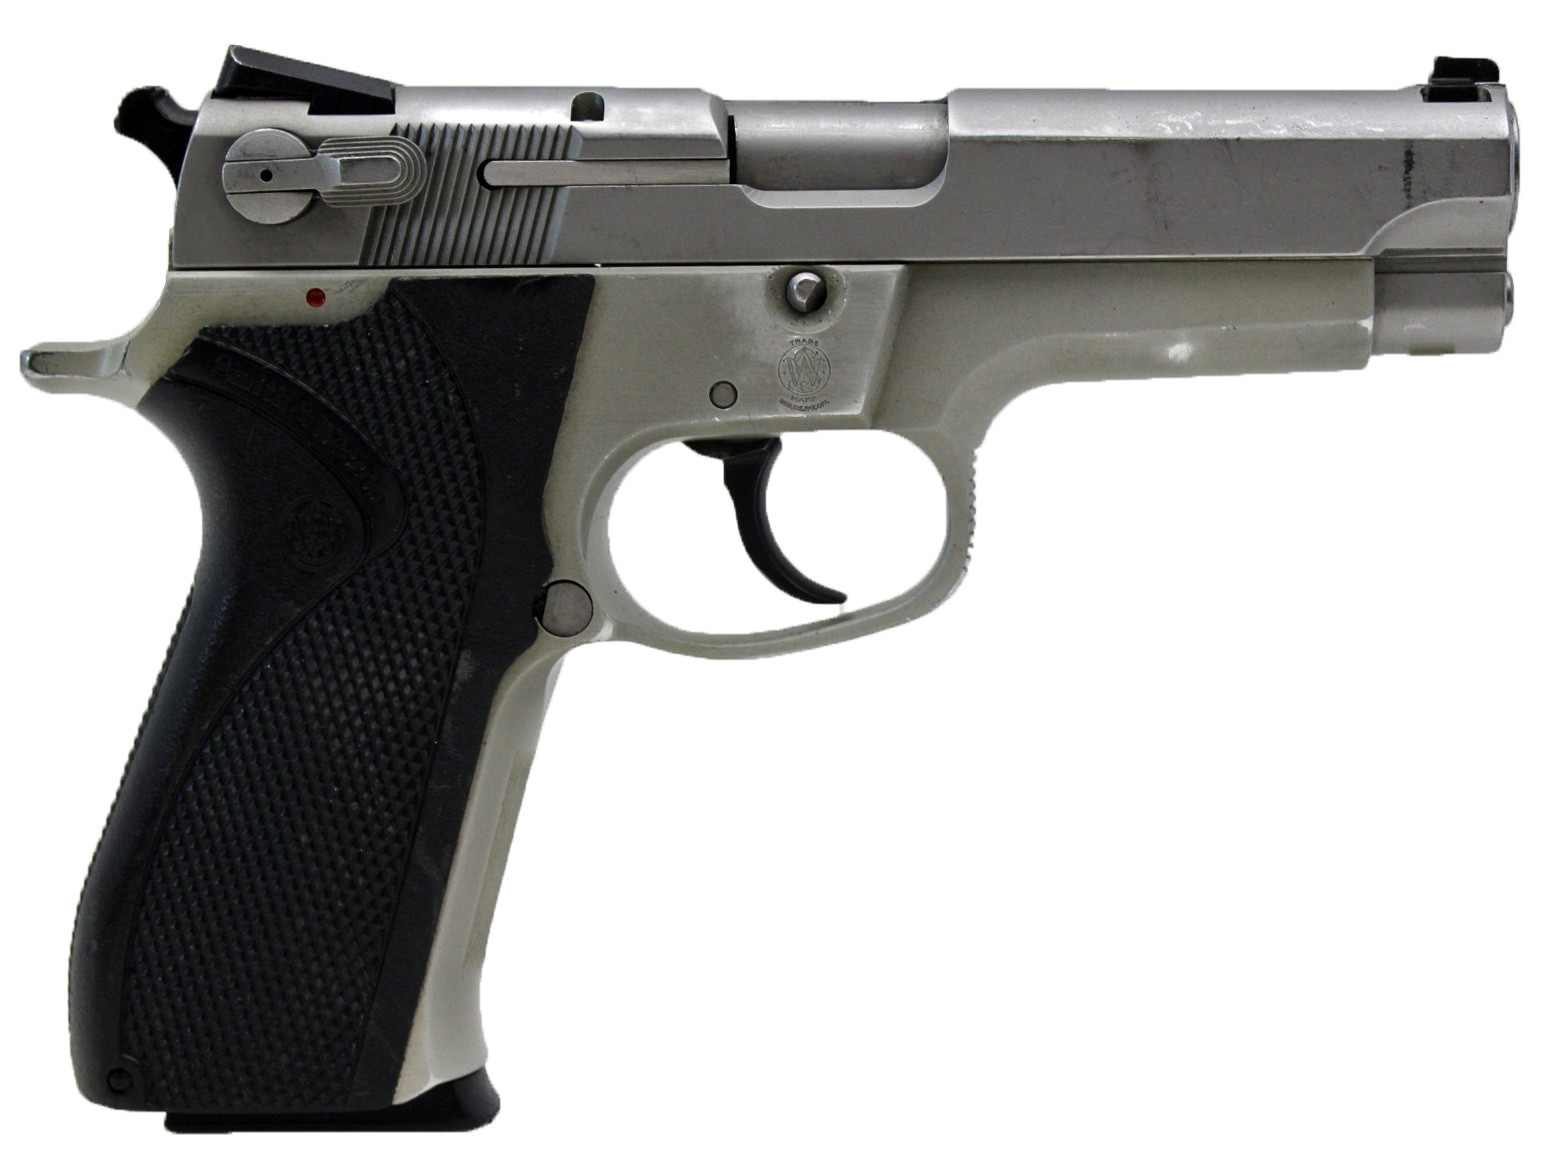 Smith & Wesson 5903, 9mm, *Good, Incomplete*